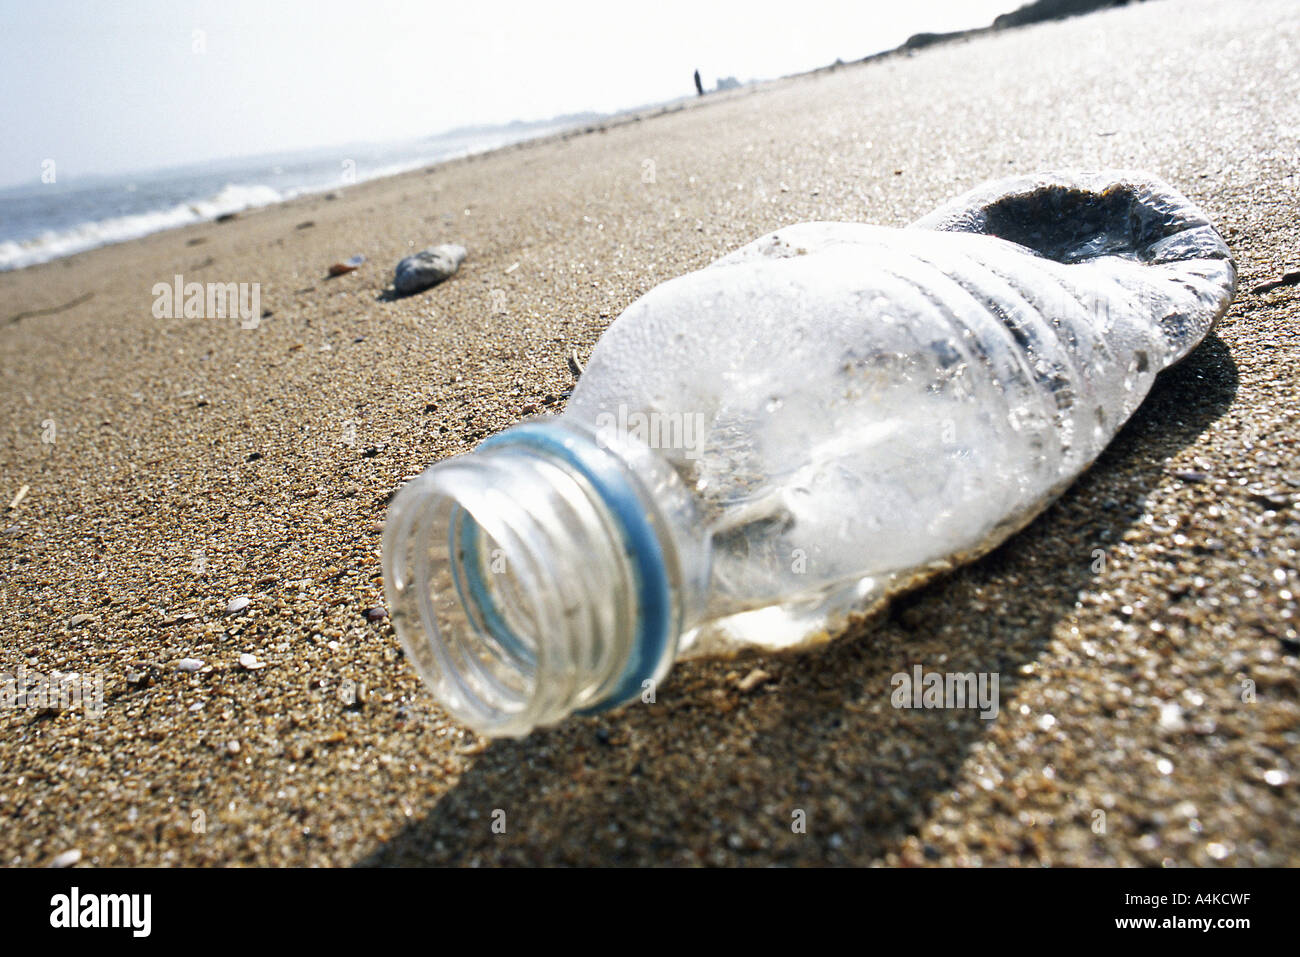 Plastic bottle on beach - Stock Image